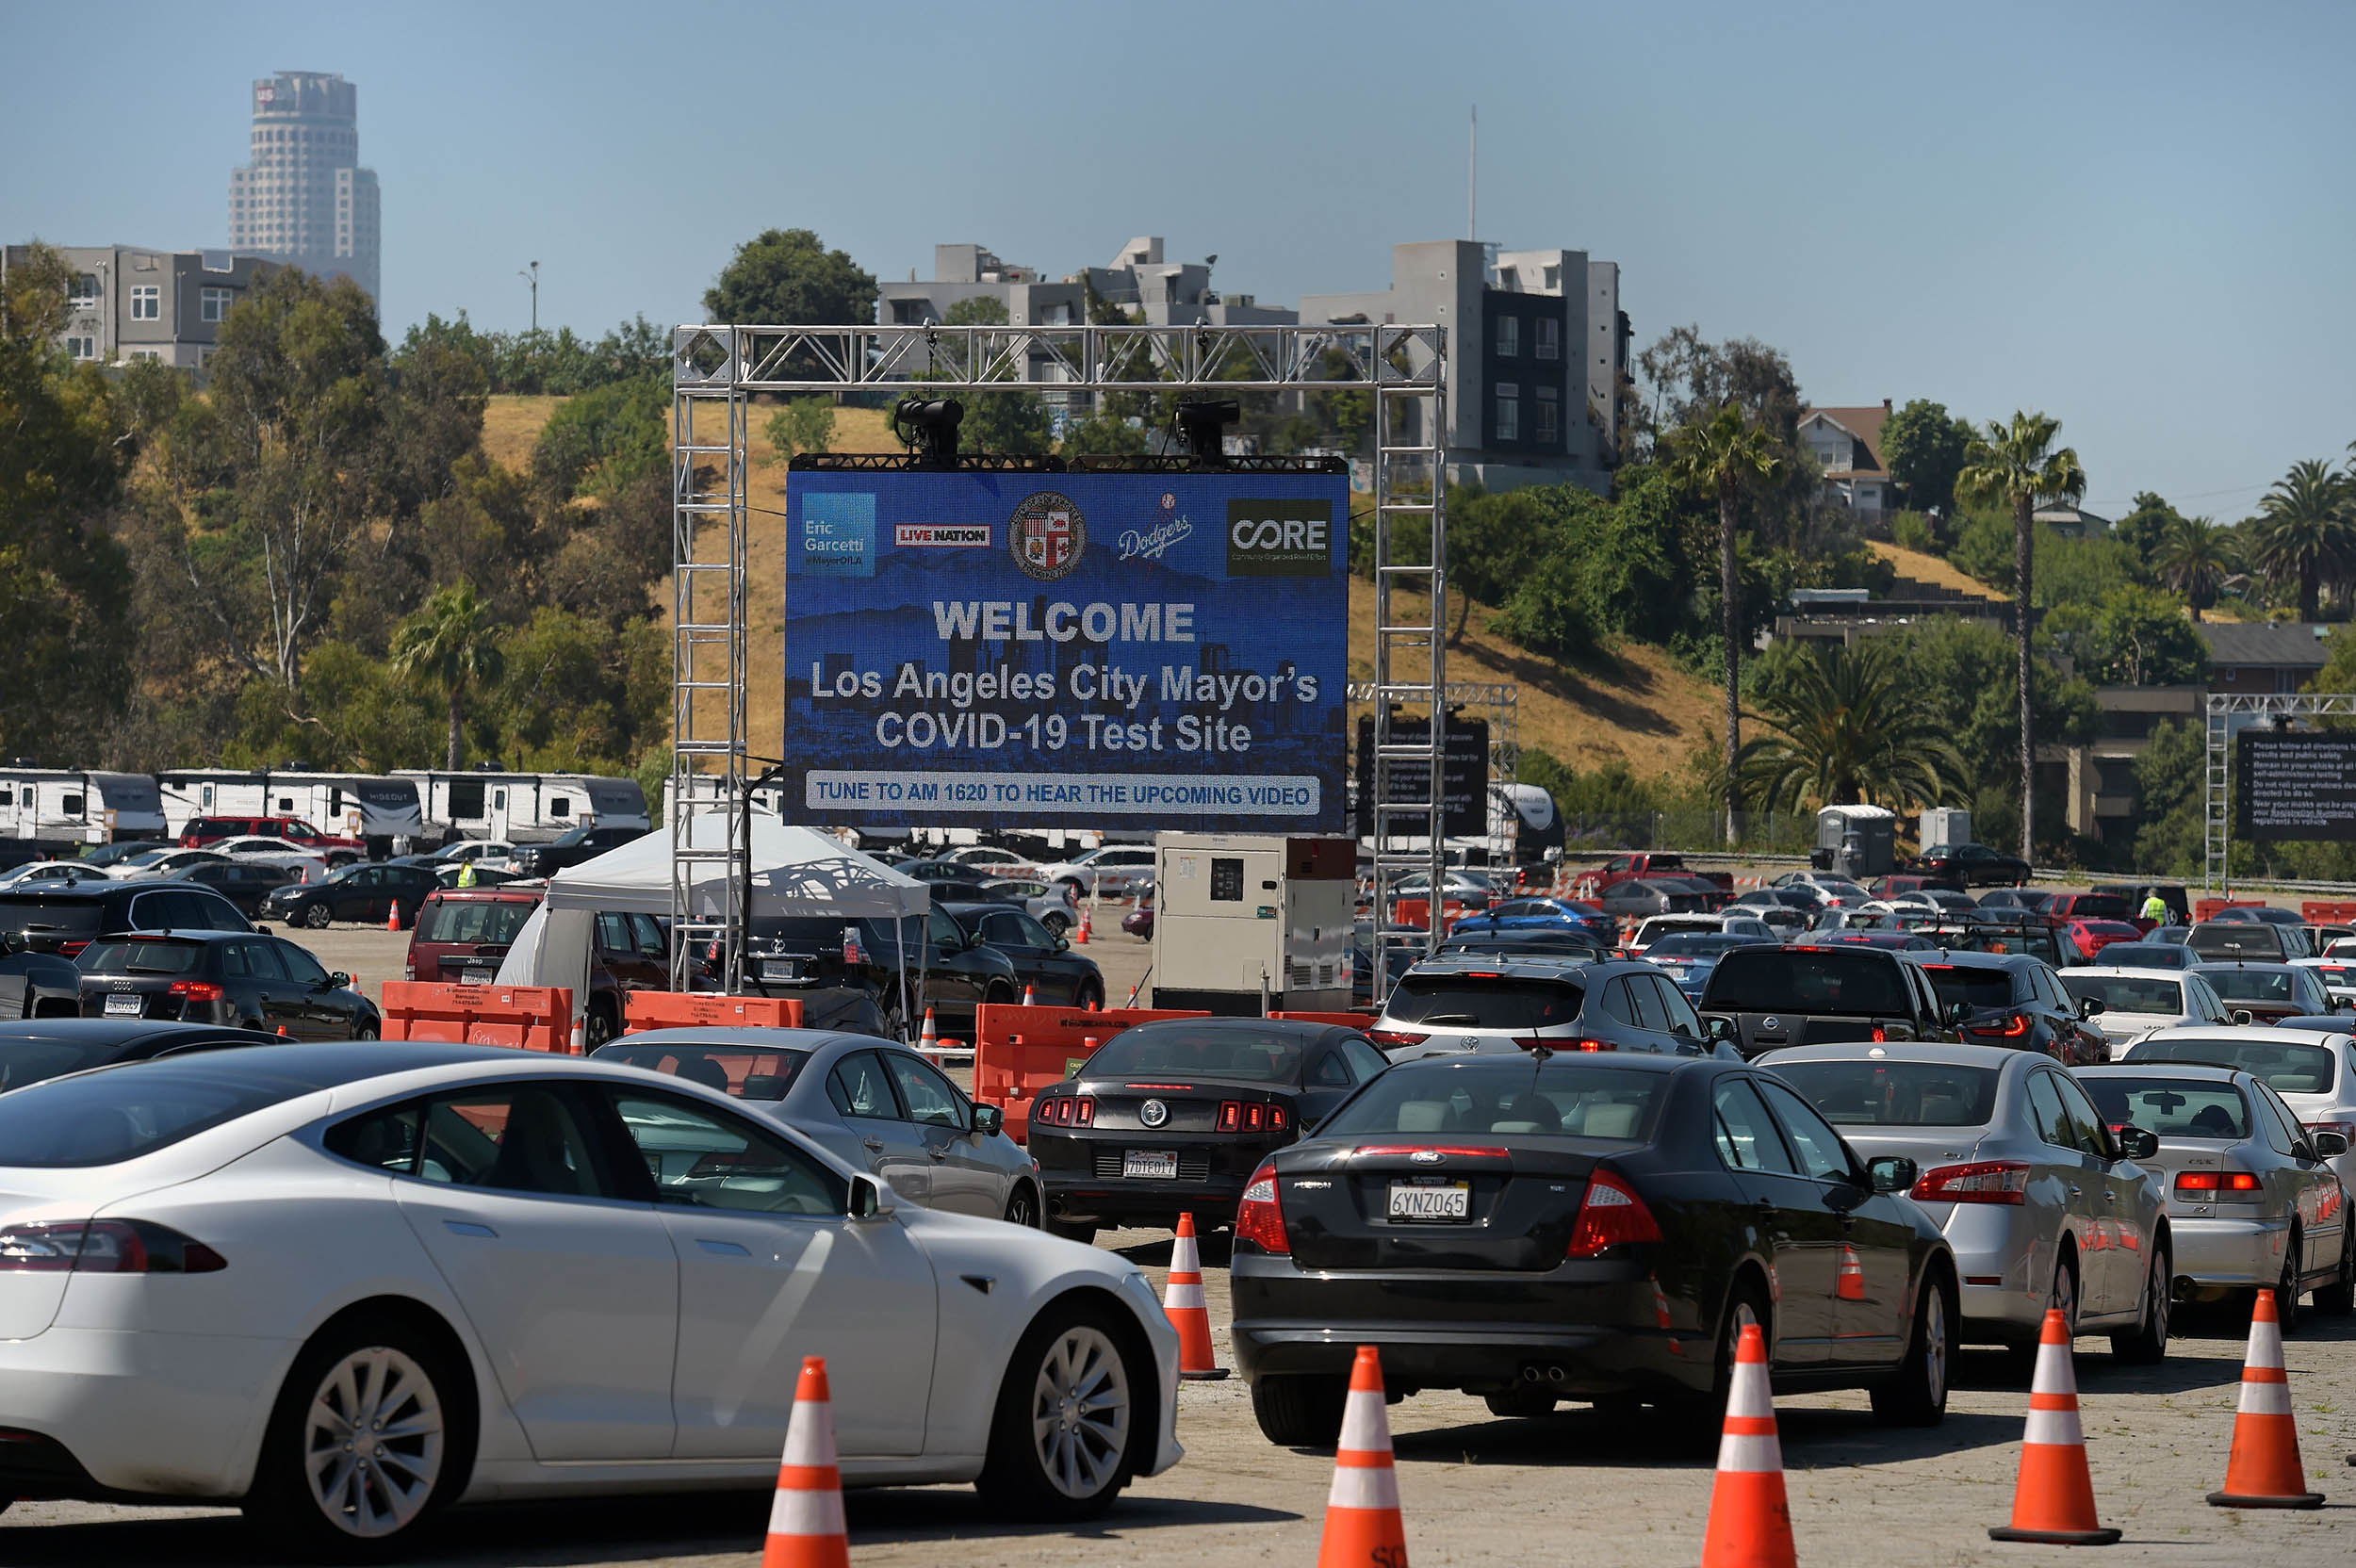 Cars line-up in a drive-through novel coronavirus testing site at the Los Angeles Dodgers stadium parking lot, in Los Angeles, on May 26.